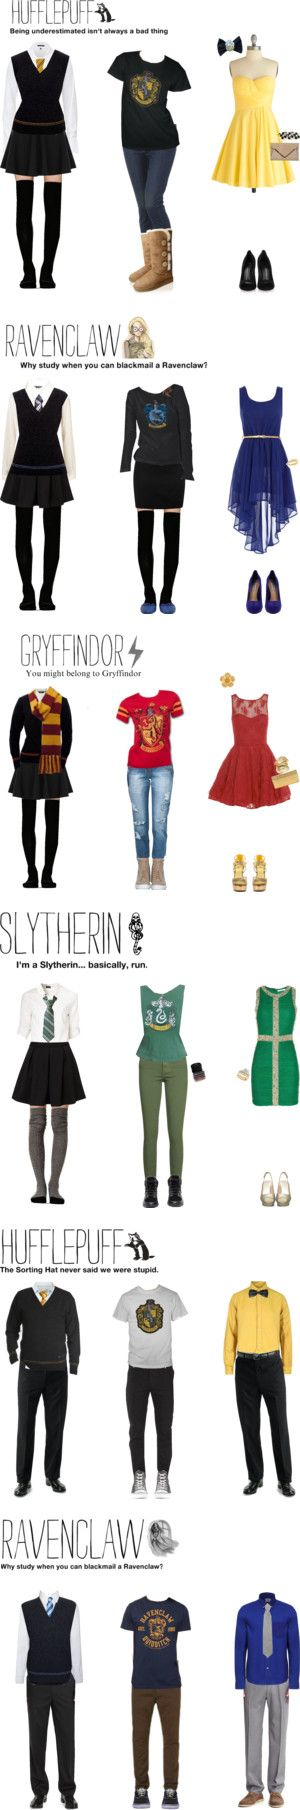 """Hogwarts Clothing"" by aine-angel ❤ liked on Polyvore"